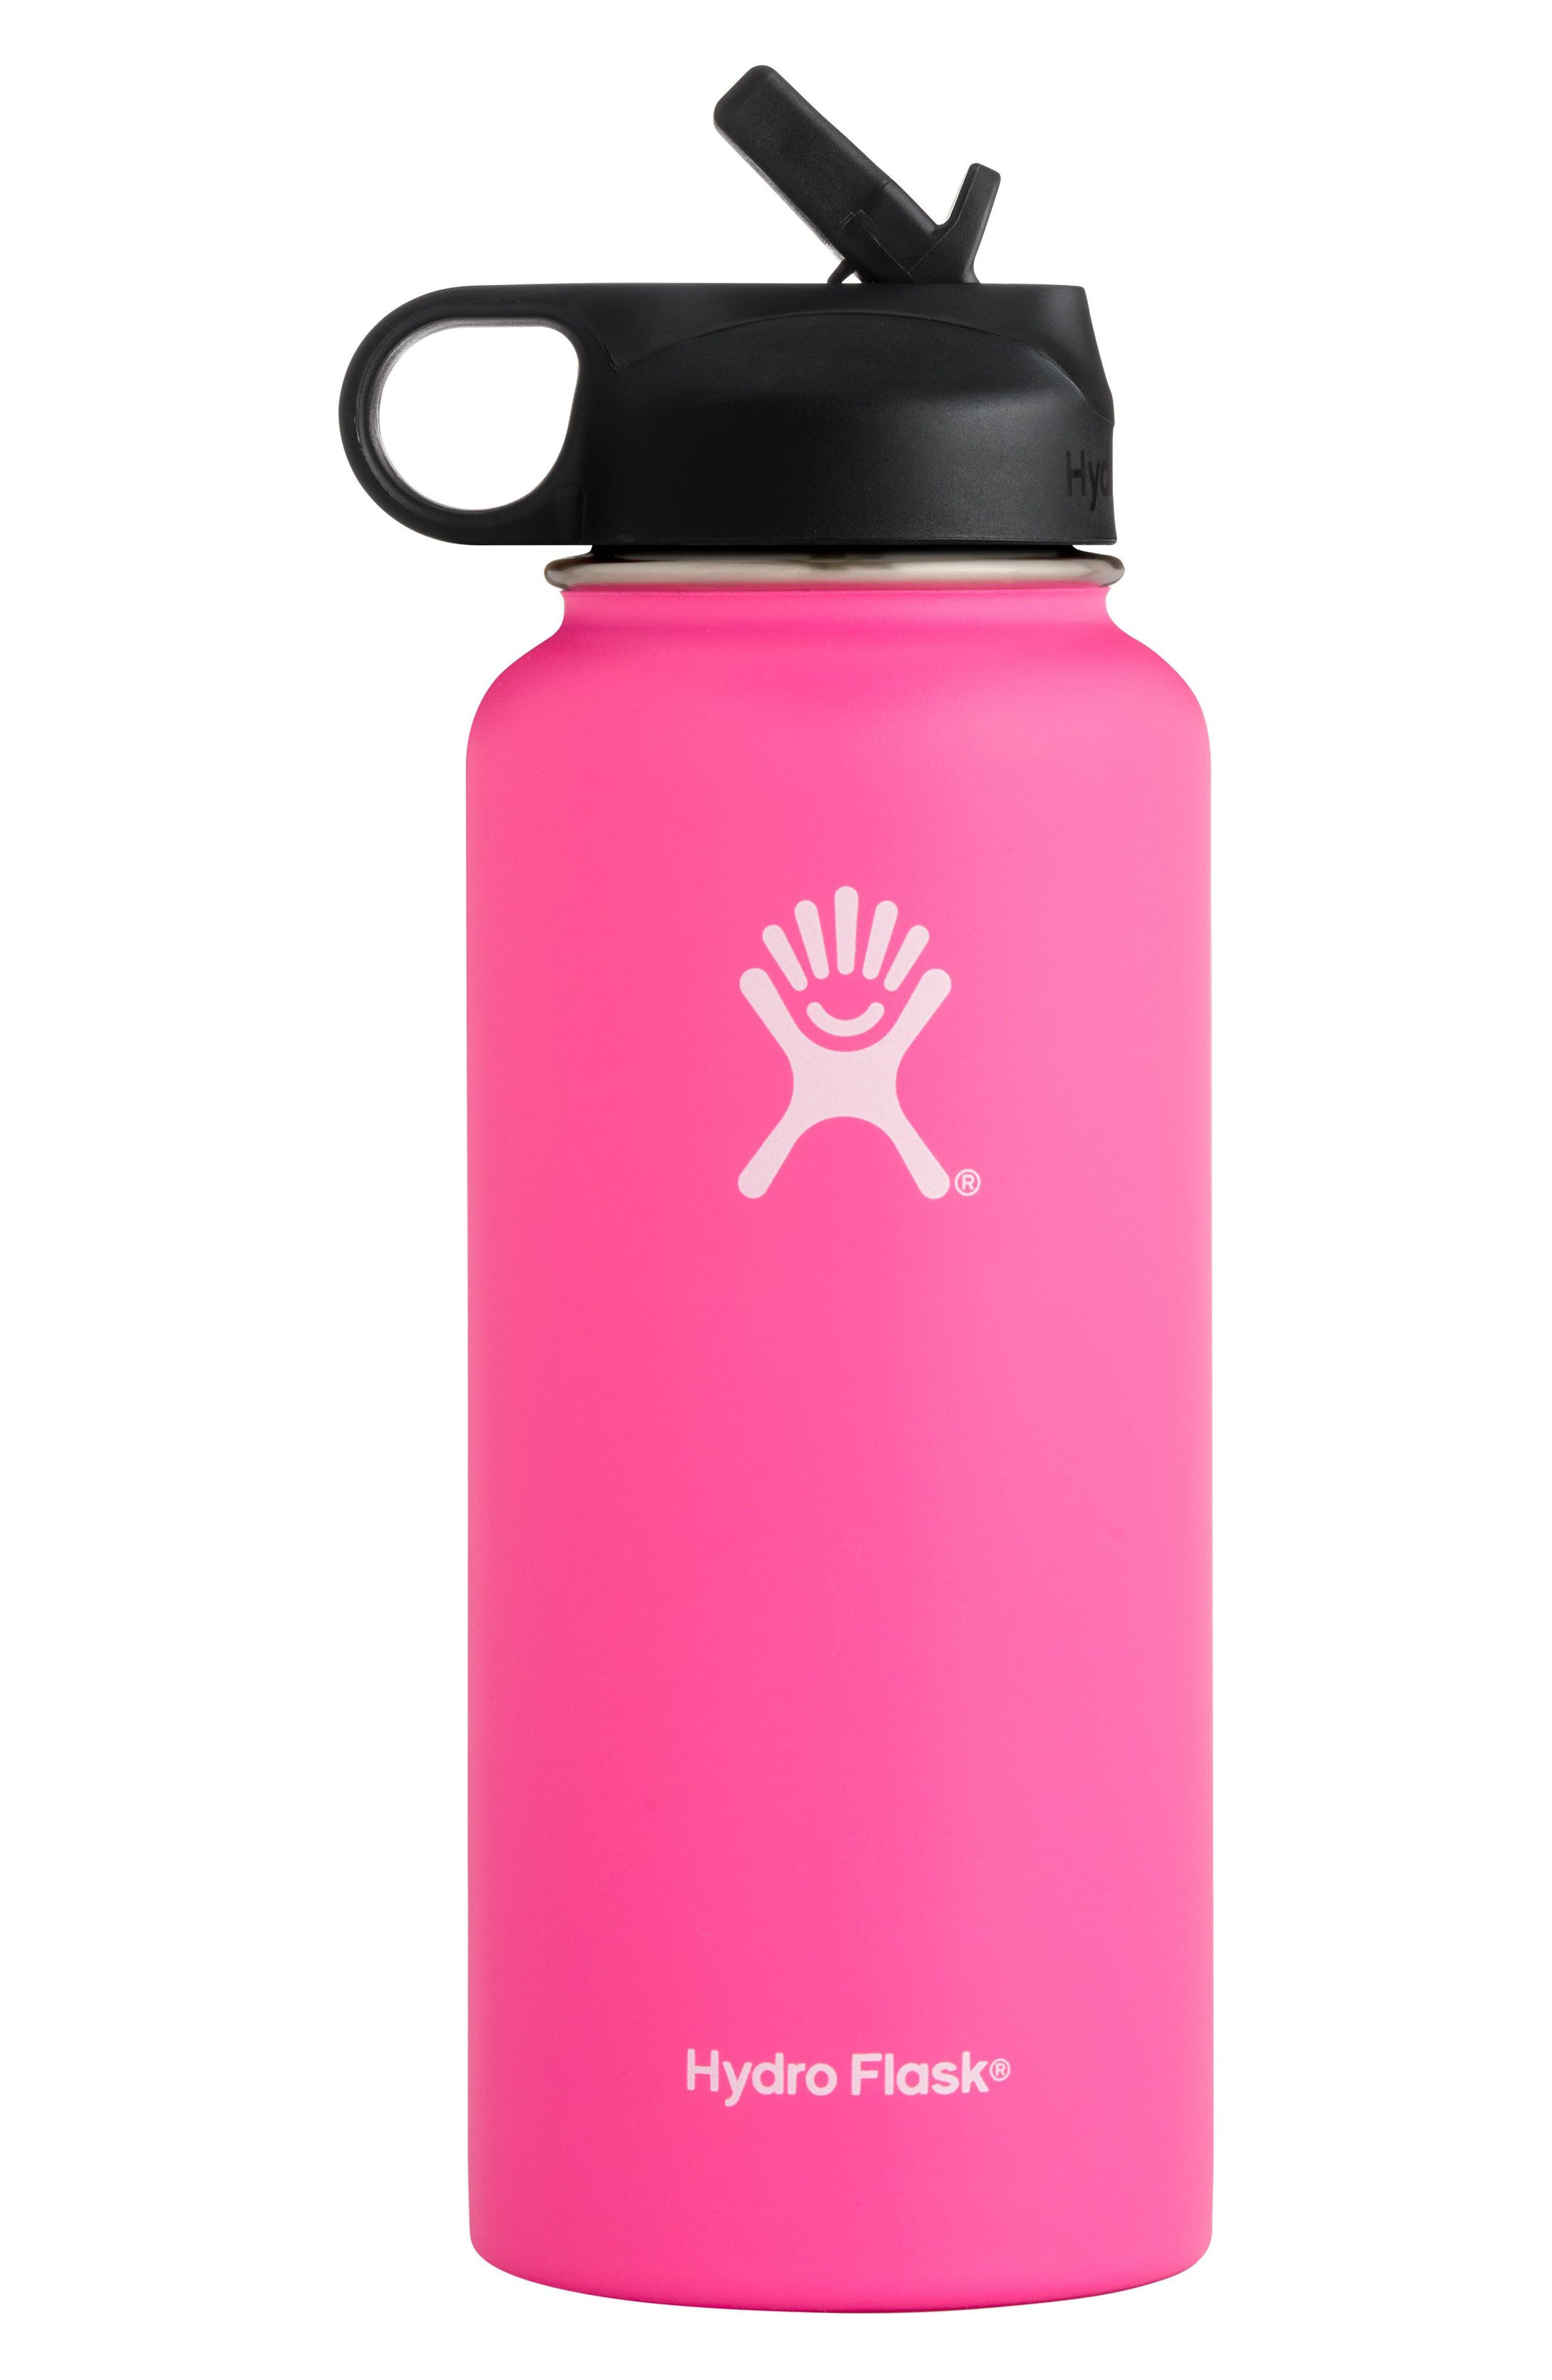 32-Ounce Wide Mouth Bottle with Straw Lid,                             Main thumbnail 1, color,                             Flamingo